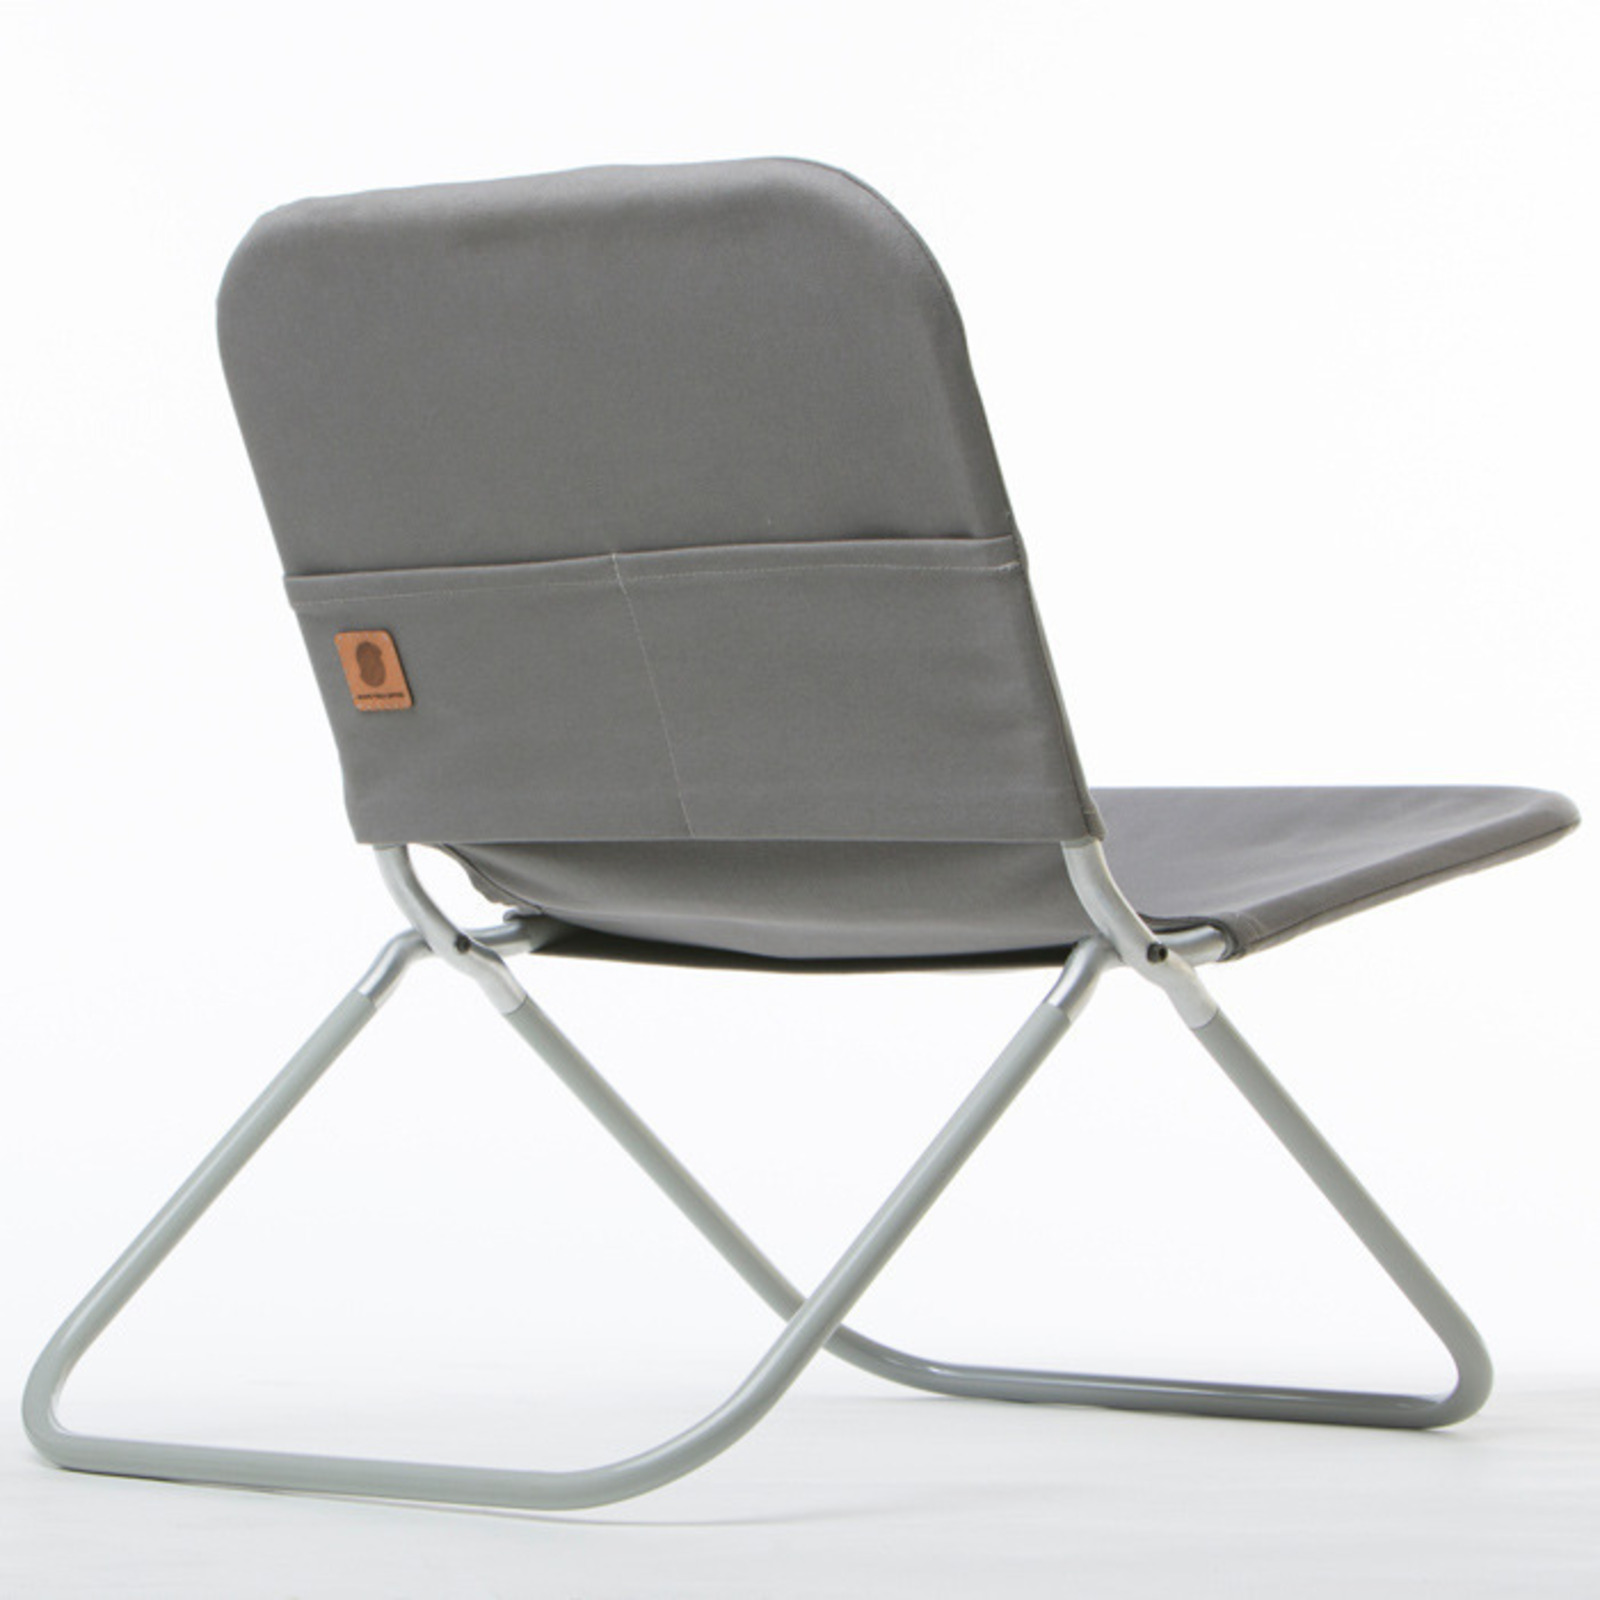 Jolly Large Shape Field Chair Thumb Fing Reading Chair Fable Reading Table Chair furniture Foldable Reading Chair